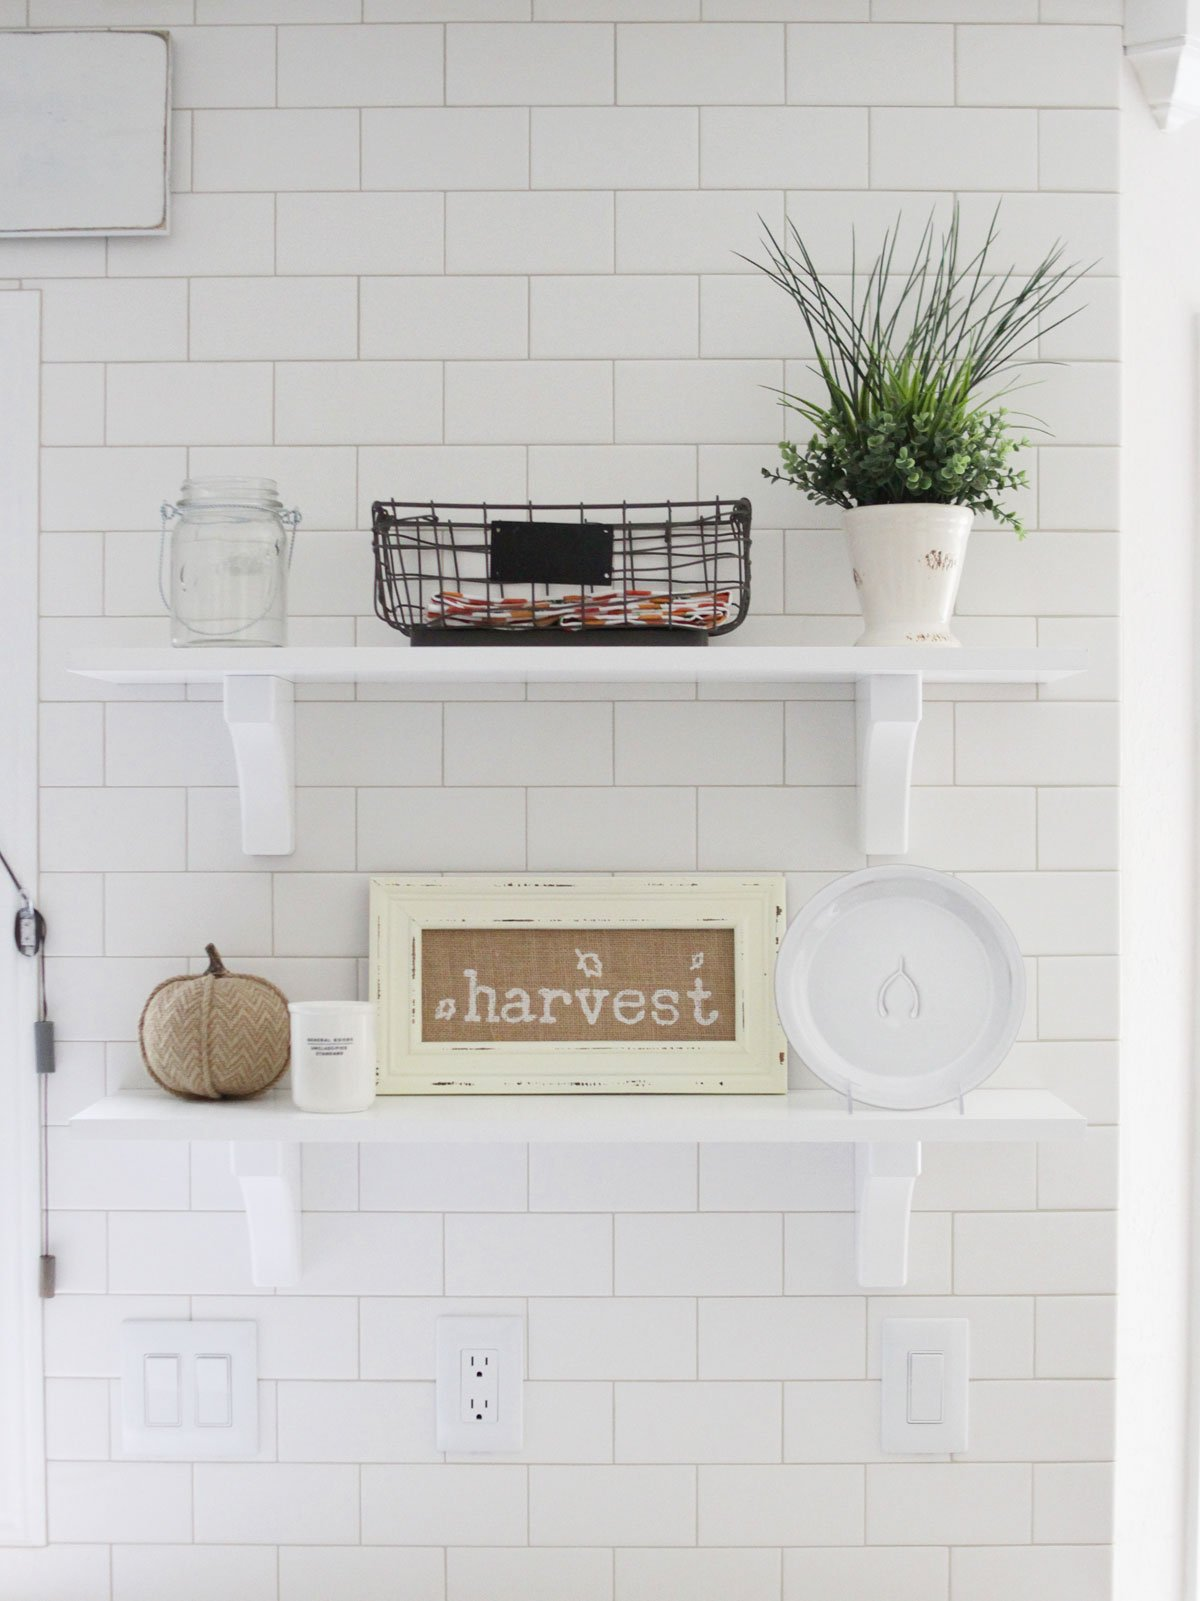 Fall floating shelves in kitchen